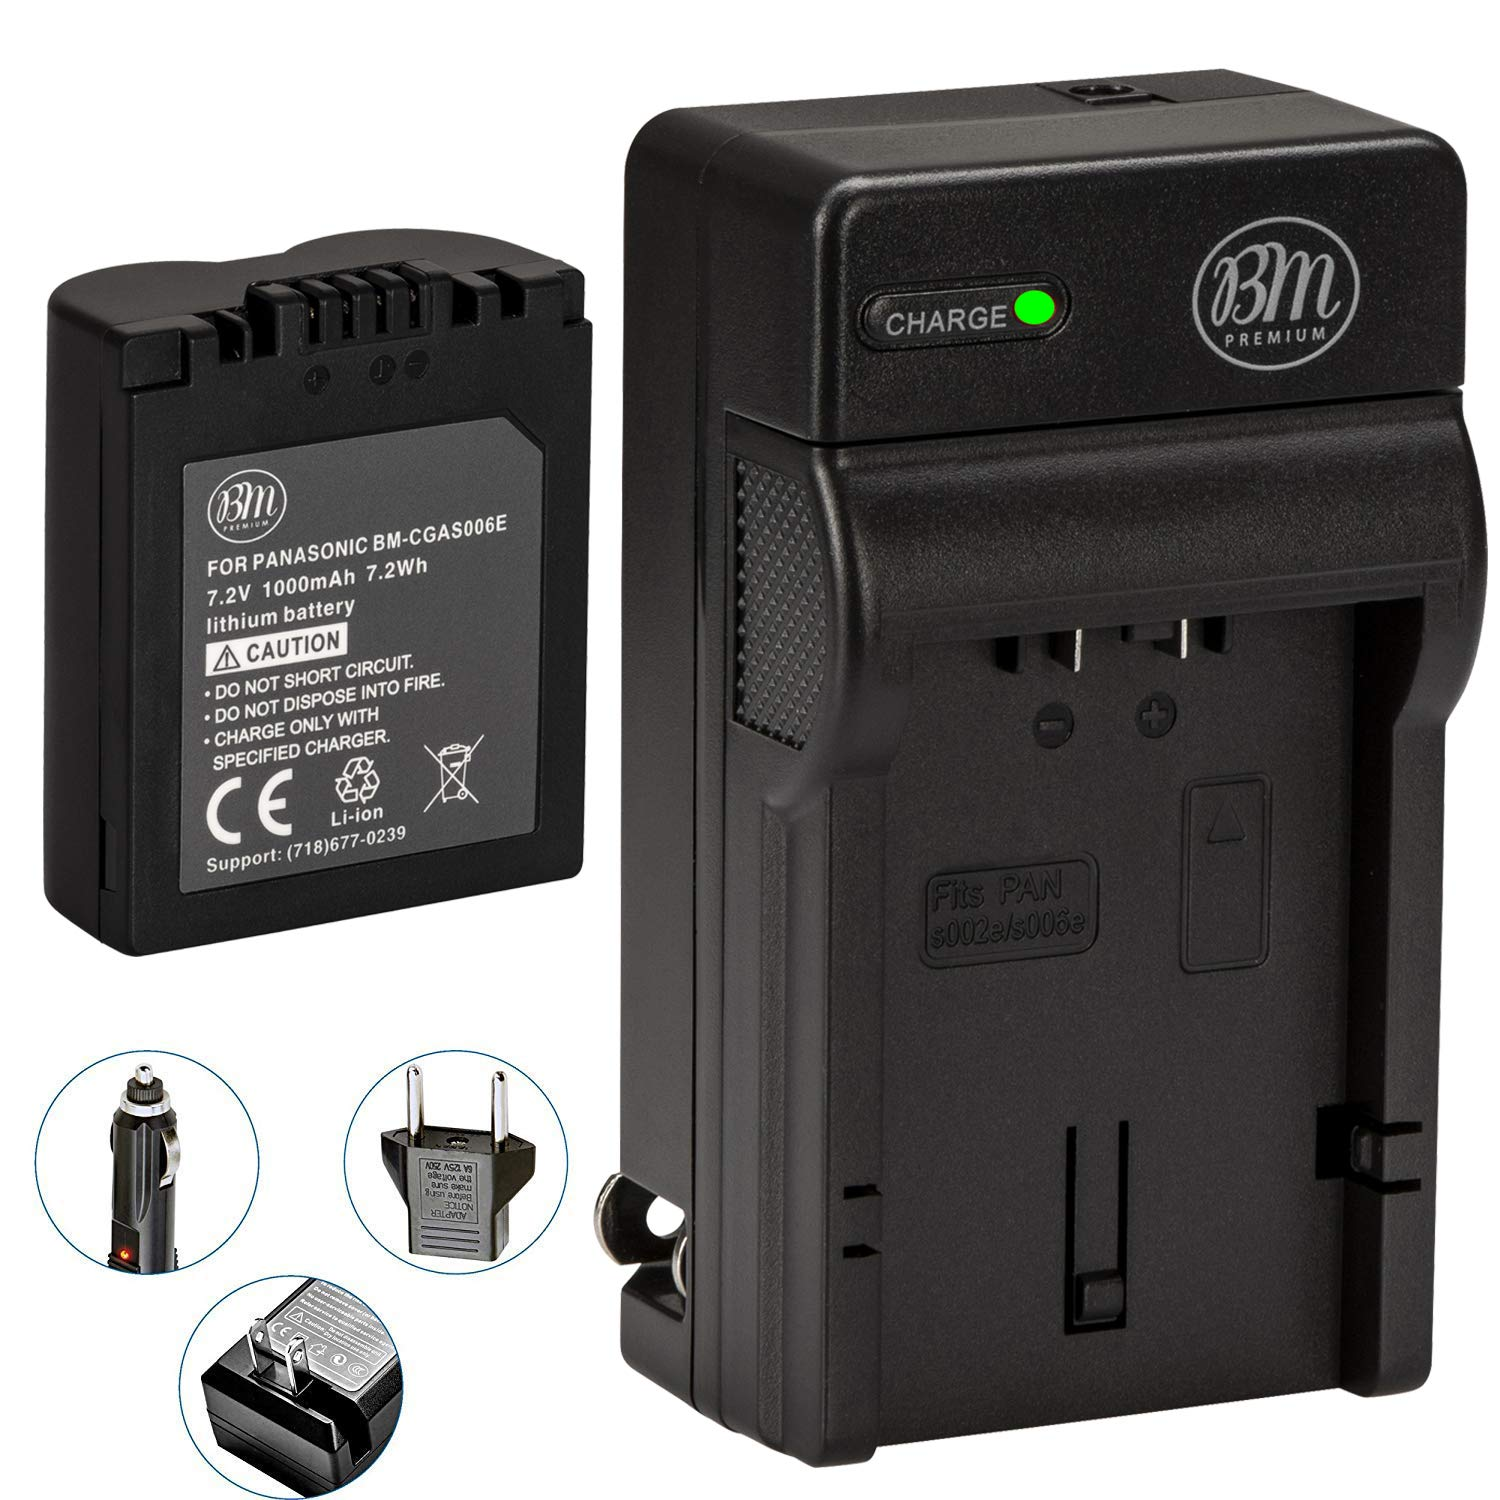 BM Premium CGA-S006 Battery and Battery Charger for Panasonic Lumix DMC-FZ7, DMC-FZ8, DMC-FZ18, DMC-FZ28, DMC-FZ30, DMC-FZ35, DMC-FZ38, DMC-FZ50 Digital Camera